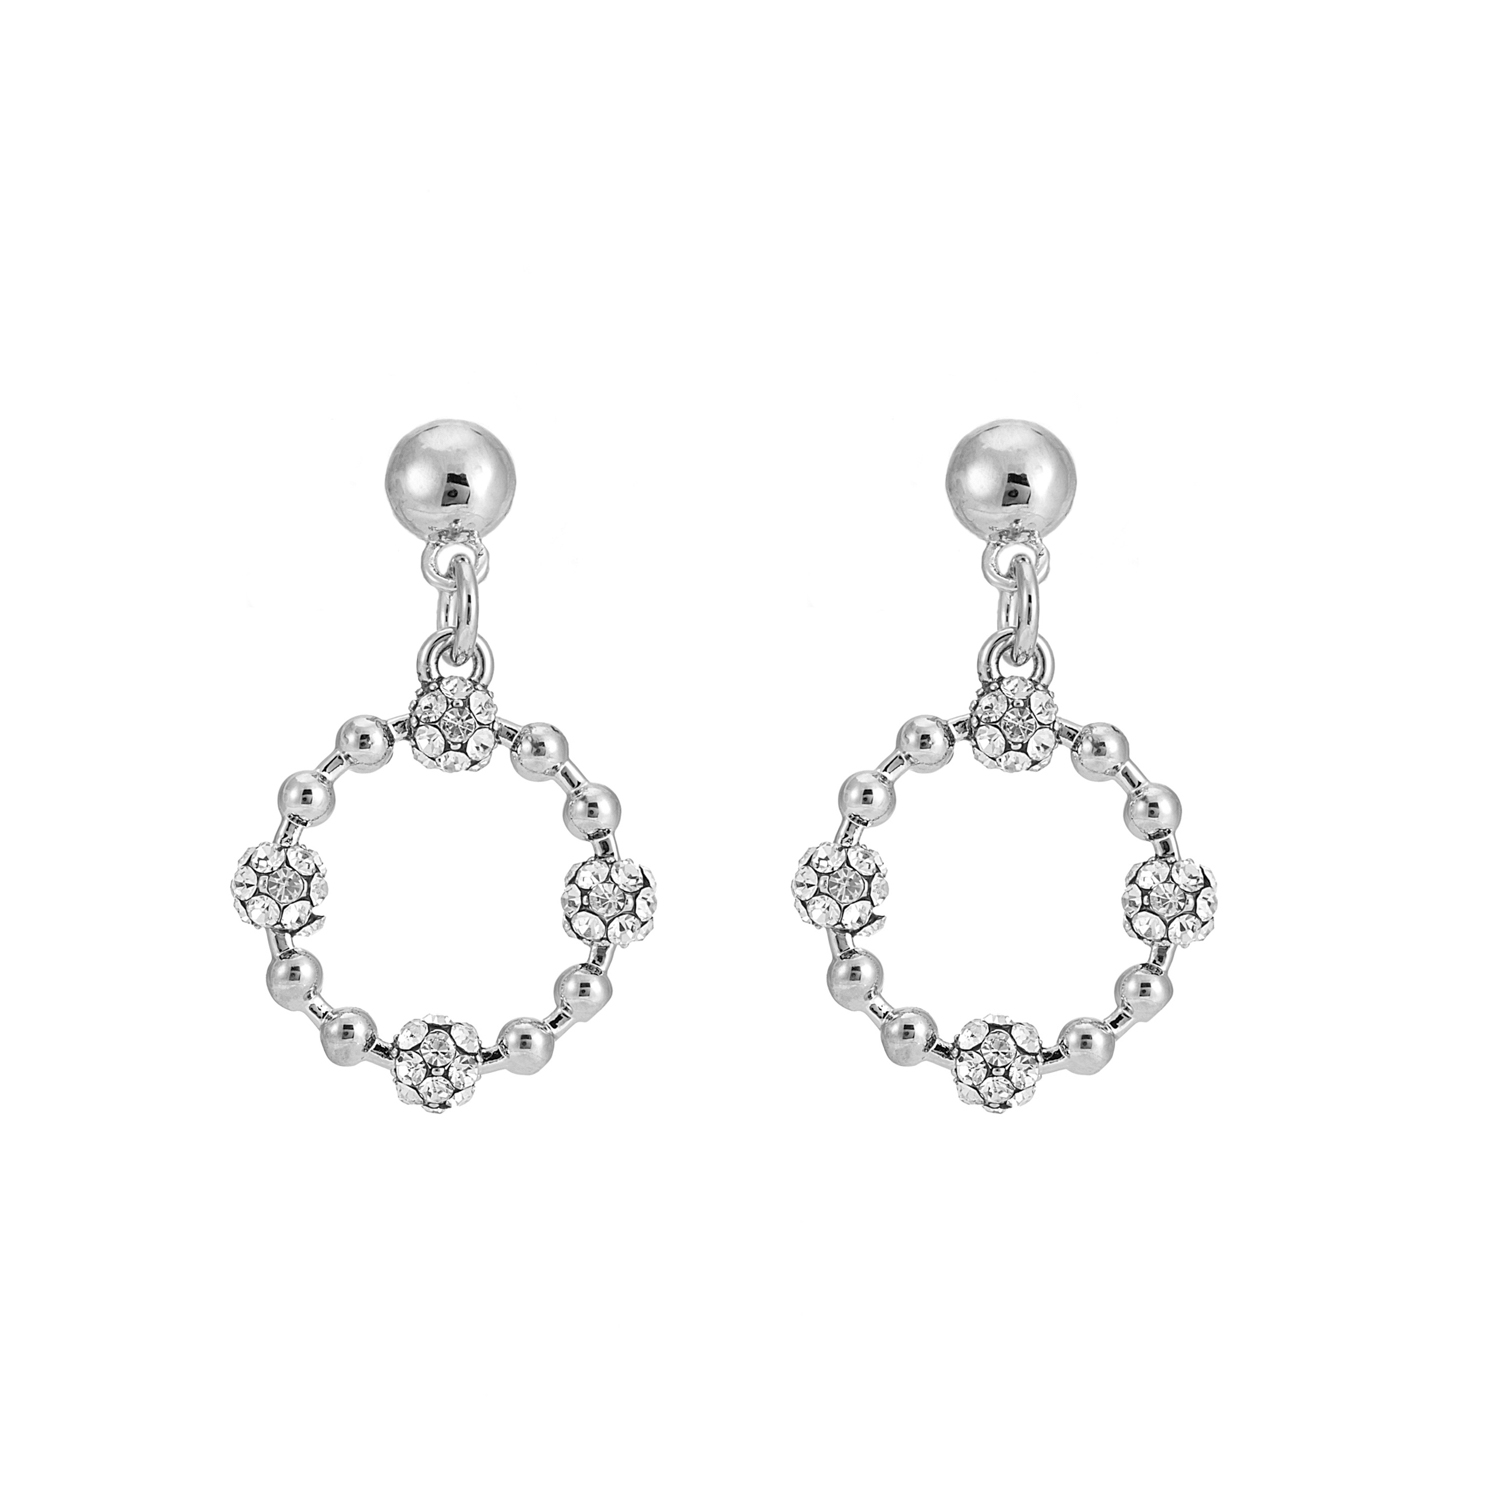 SILVER Cameo Crystal Cluster Earrings